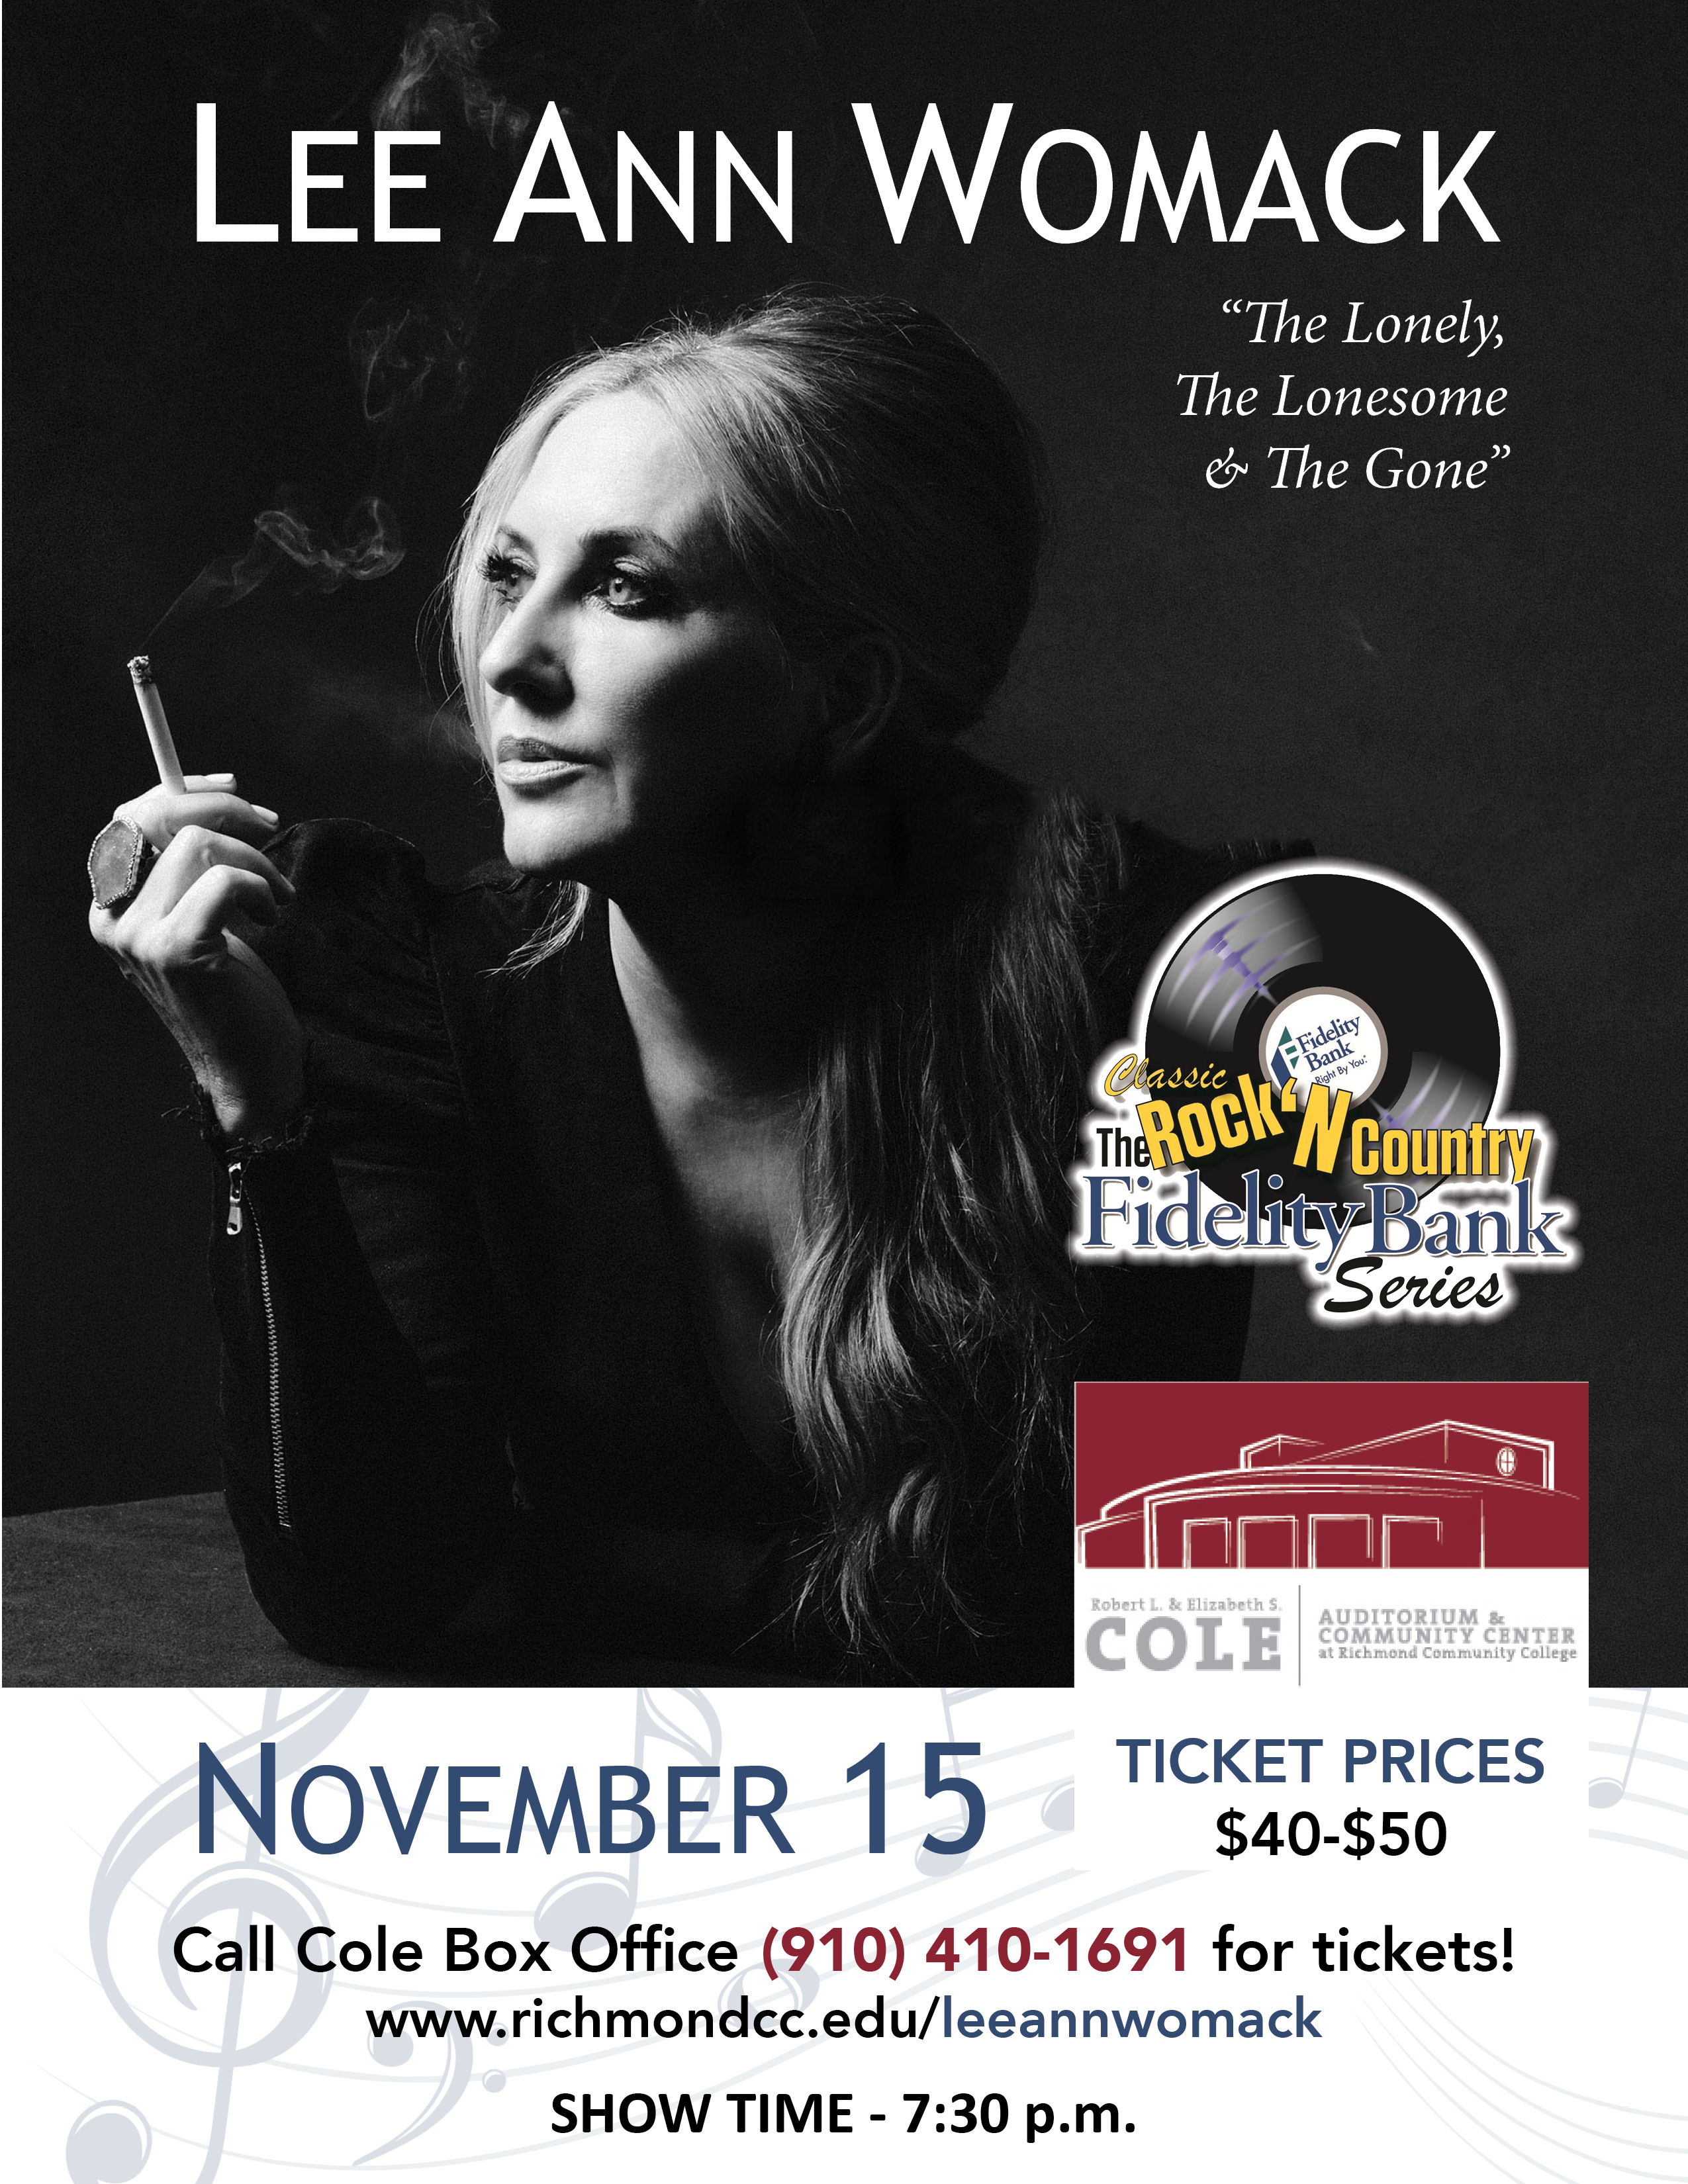 Lee Ann Womack show promo